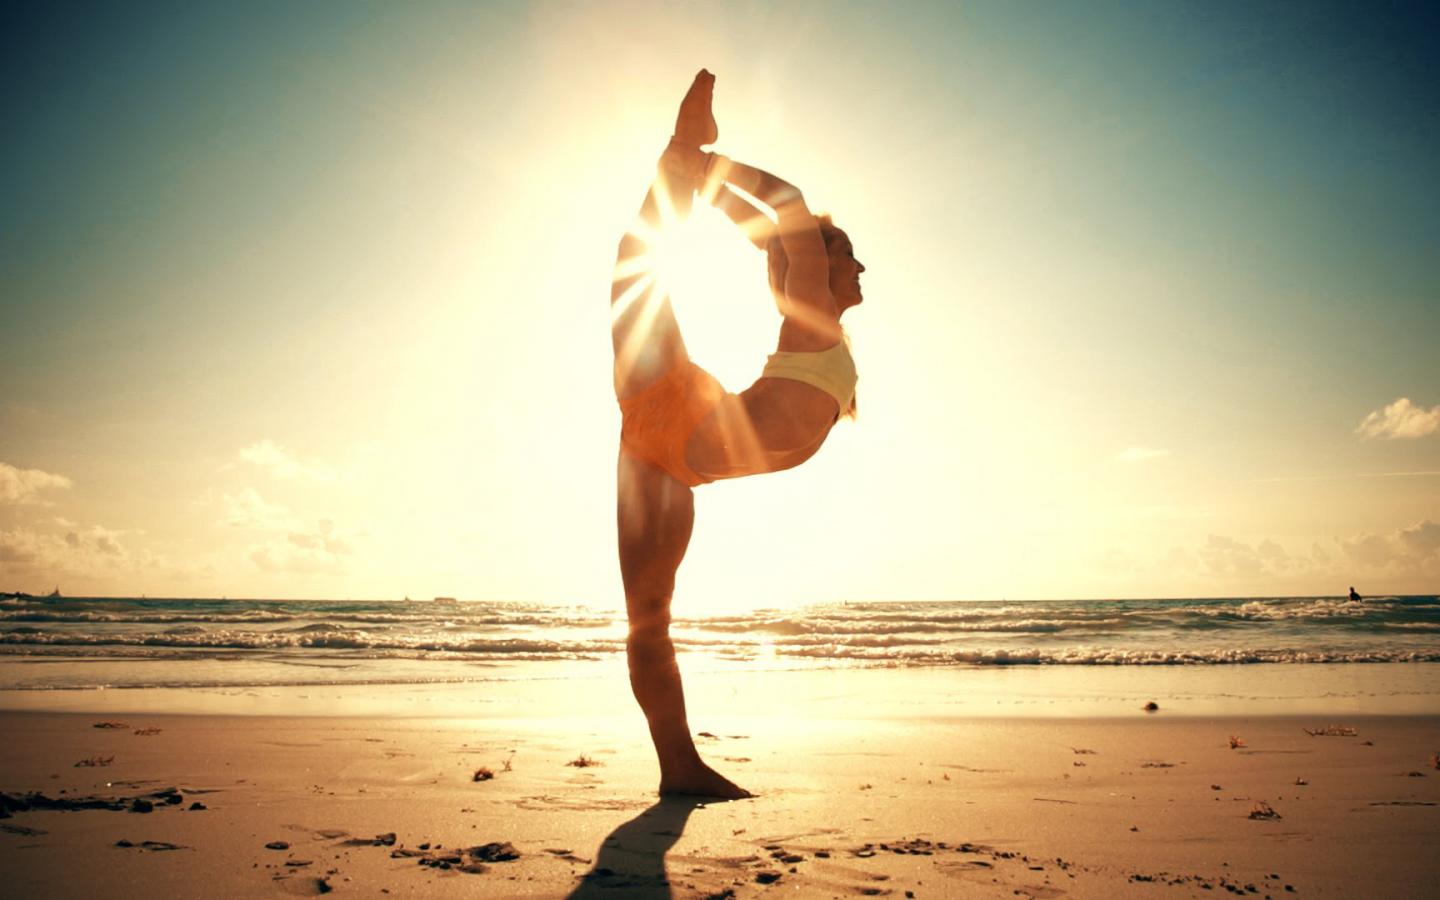 Yoga Pose with Sun Backlight in Beach - HD Wallpapers ...